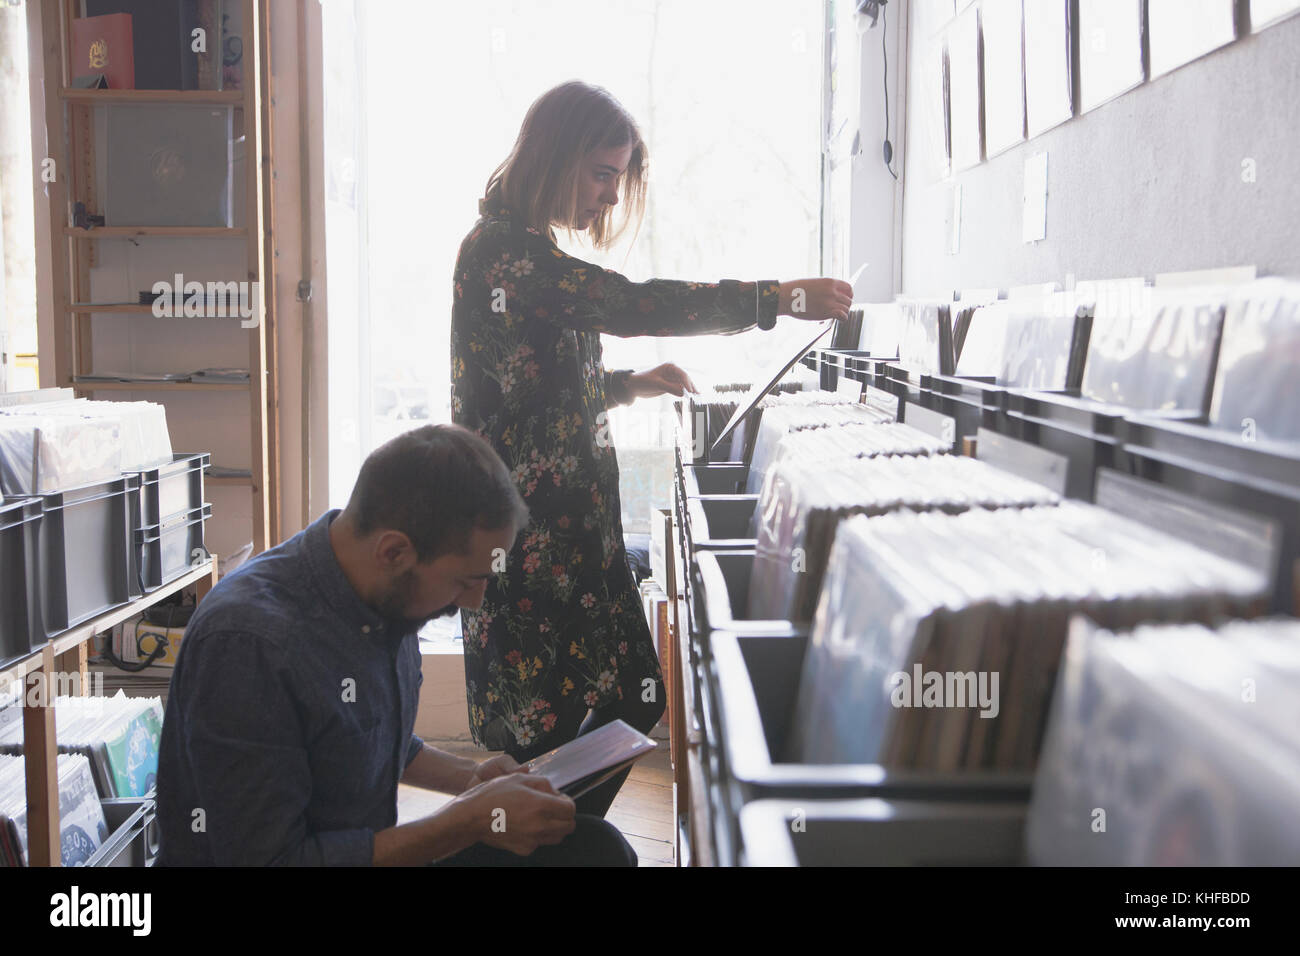 Young couple shopping for records together - Stock Image